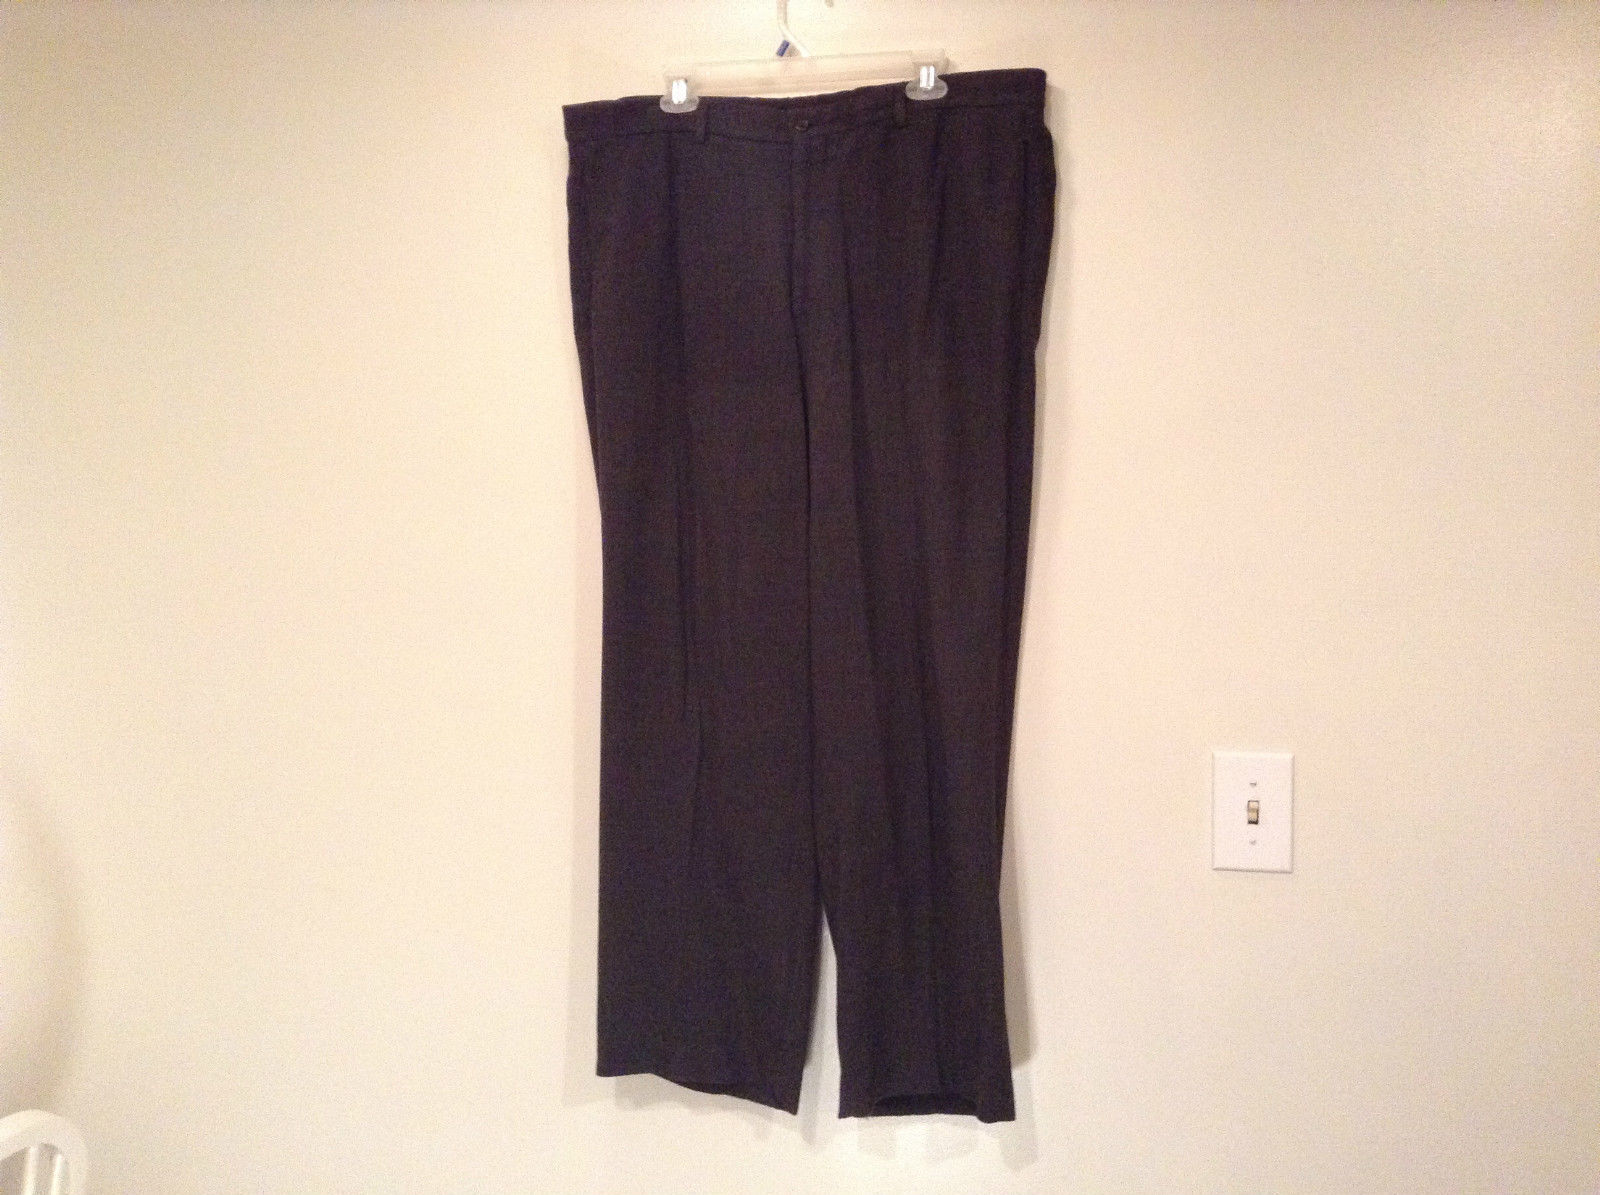 Giorgio Armani Thin Wool Pleated Front Dress Pants No Size Tag See Measurements